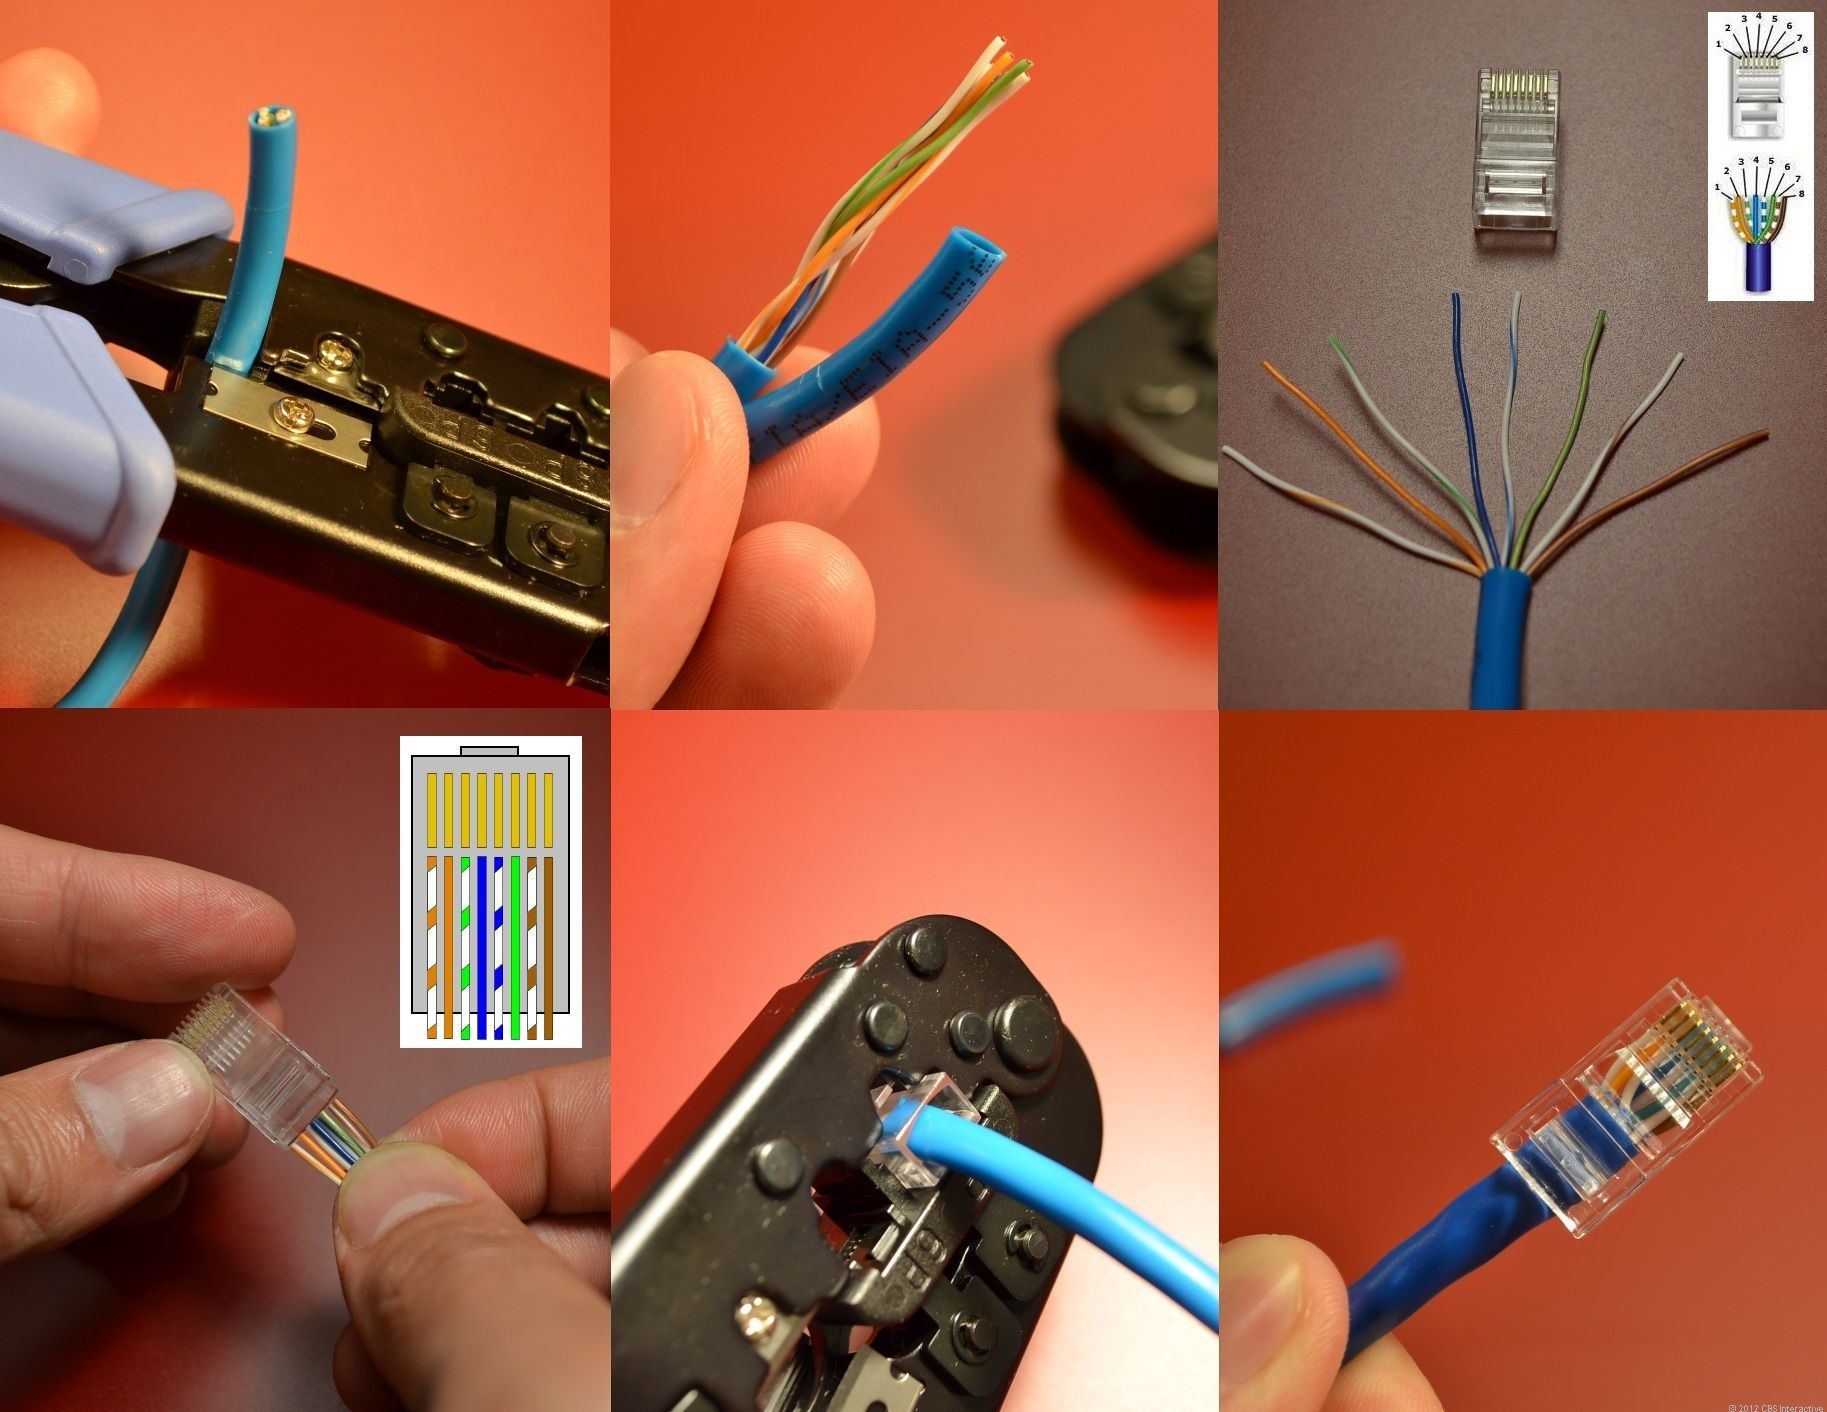 Home Networking Explained Part 3 Taking Control Of Your Wires Ethernet Cable Wiring B Here Are The Steps To Make Own Network Remember Scheme Is Hardest Click Enlarge